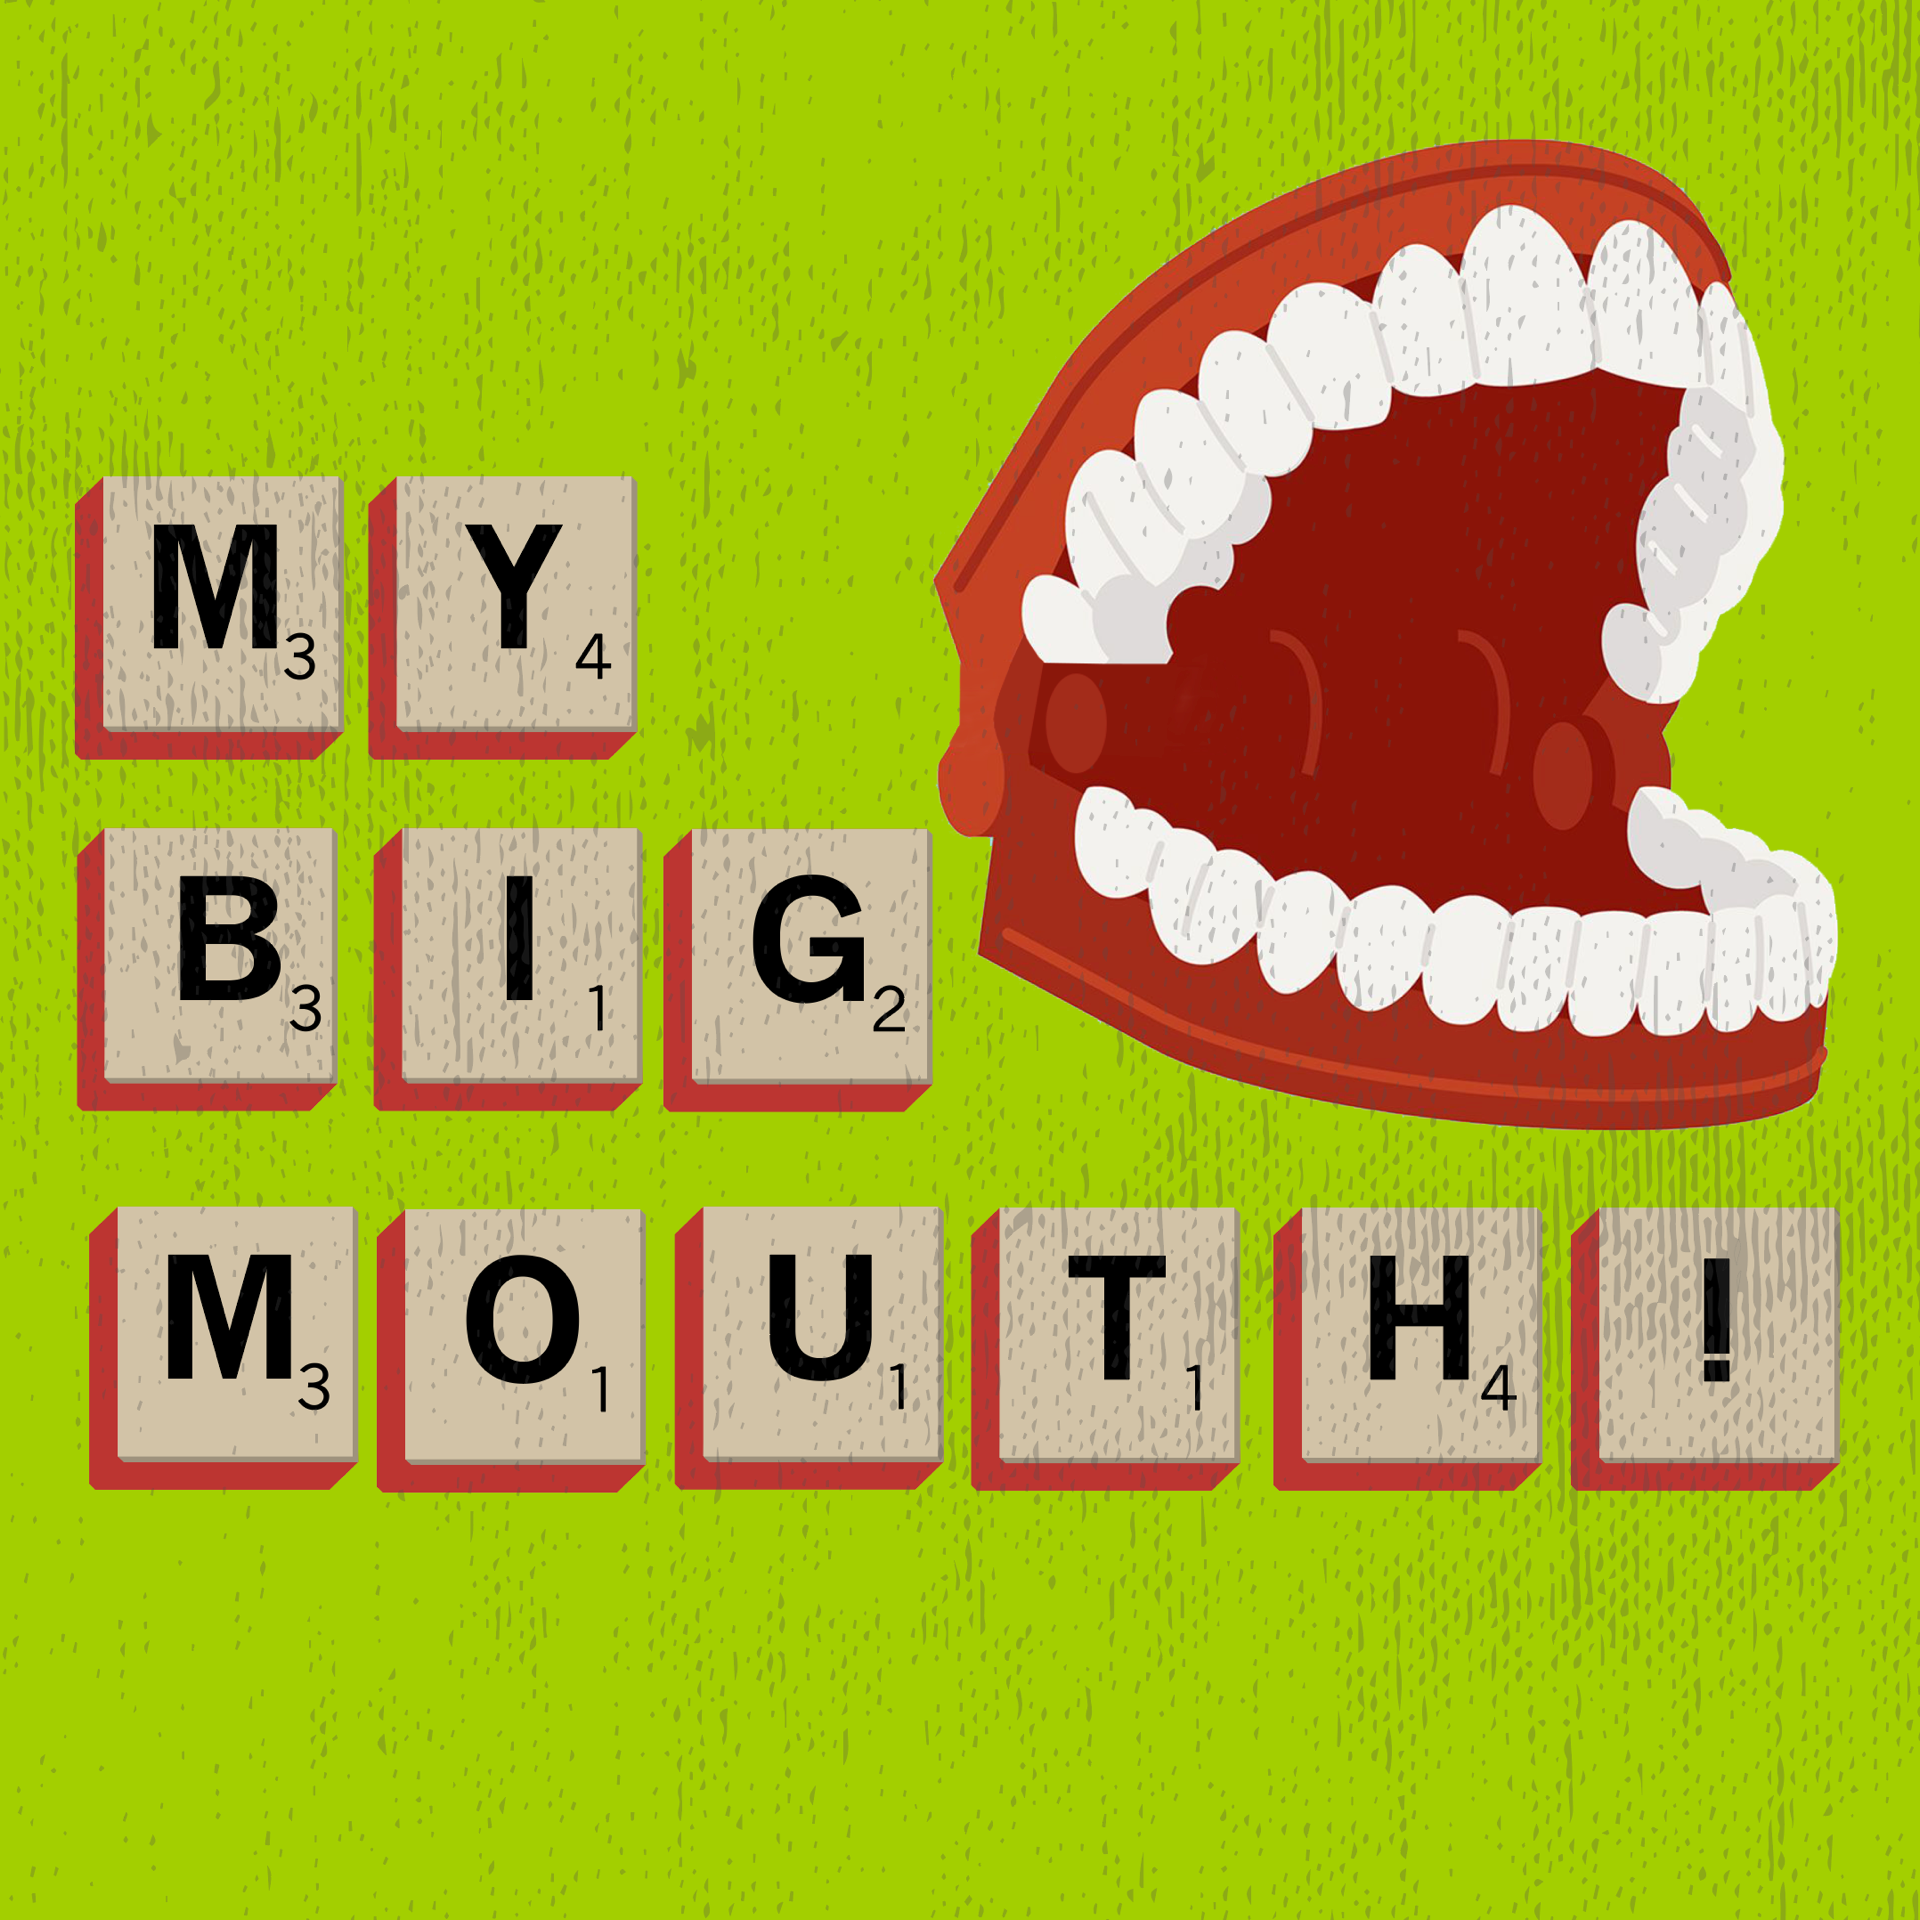 MY BIG MOUTH | AUGUST 19 - SEPTEMBER 9   OPEN MOUTH... INSERT FOOT Don't we all wish we could avoid that scenario? Our words can get us into all kinds of trouble, but can also be a blessing to others! Join us this Sunday as we continue to get to the heart behind our communication struggles.